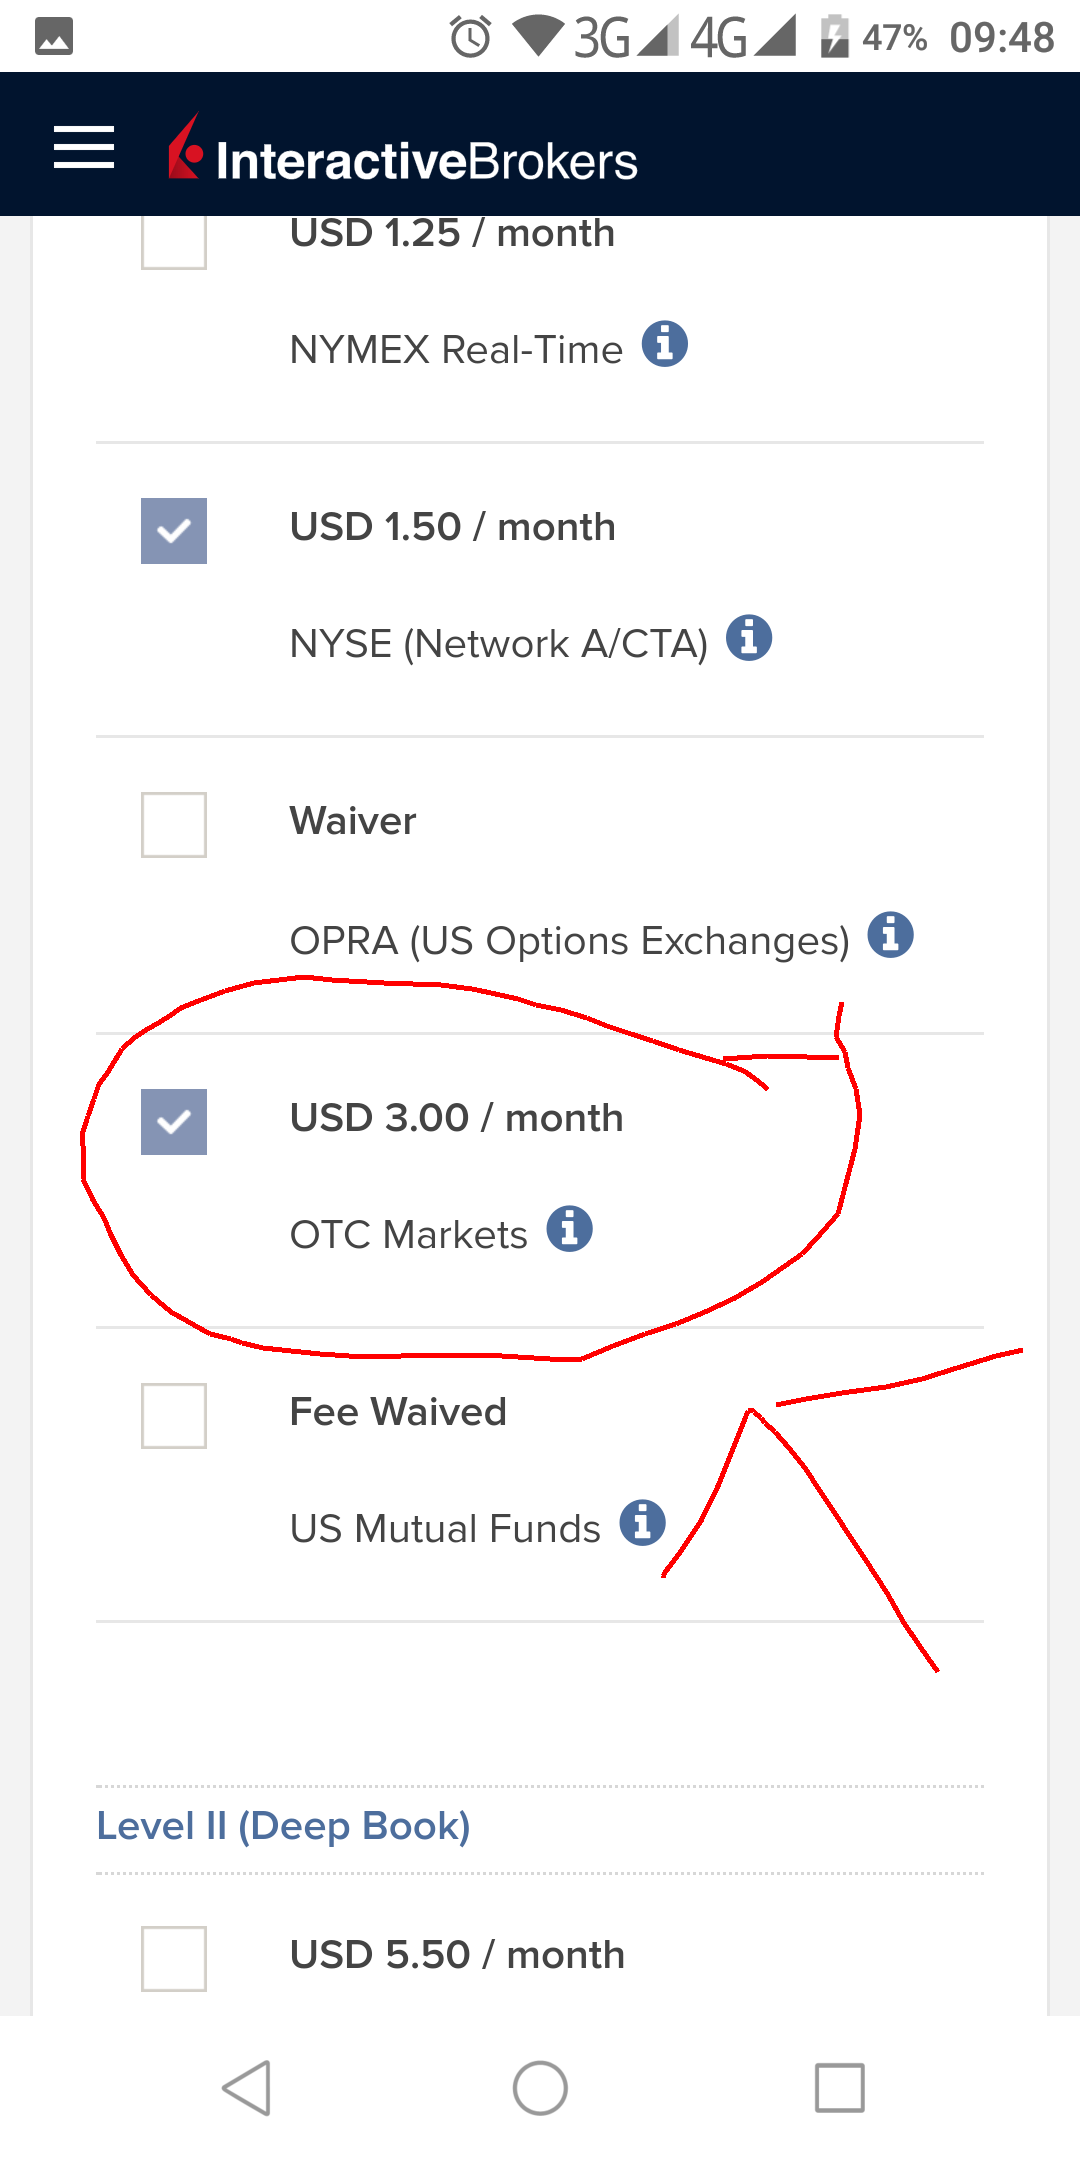 otc markets data subscription